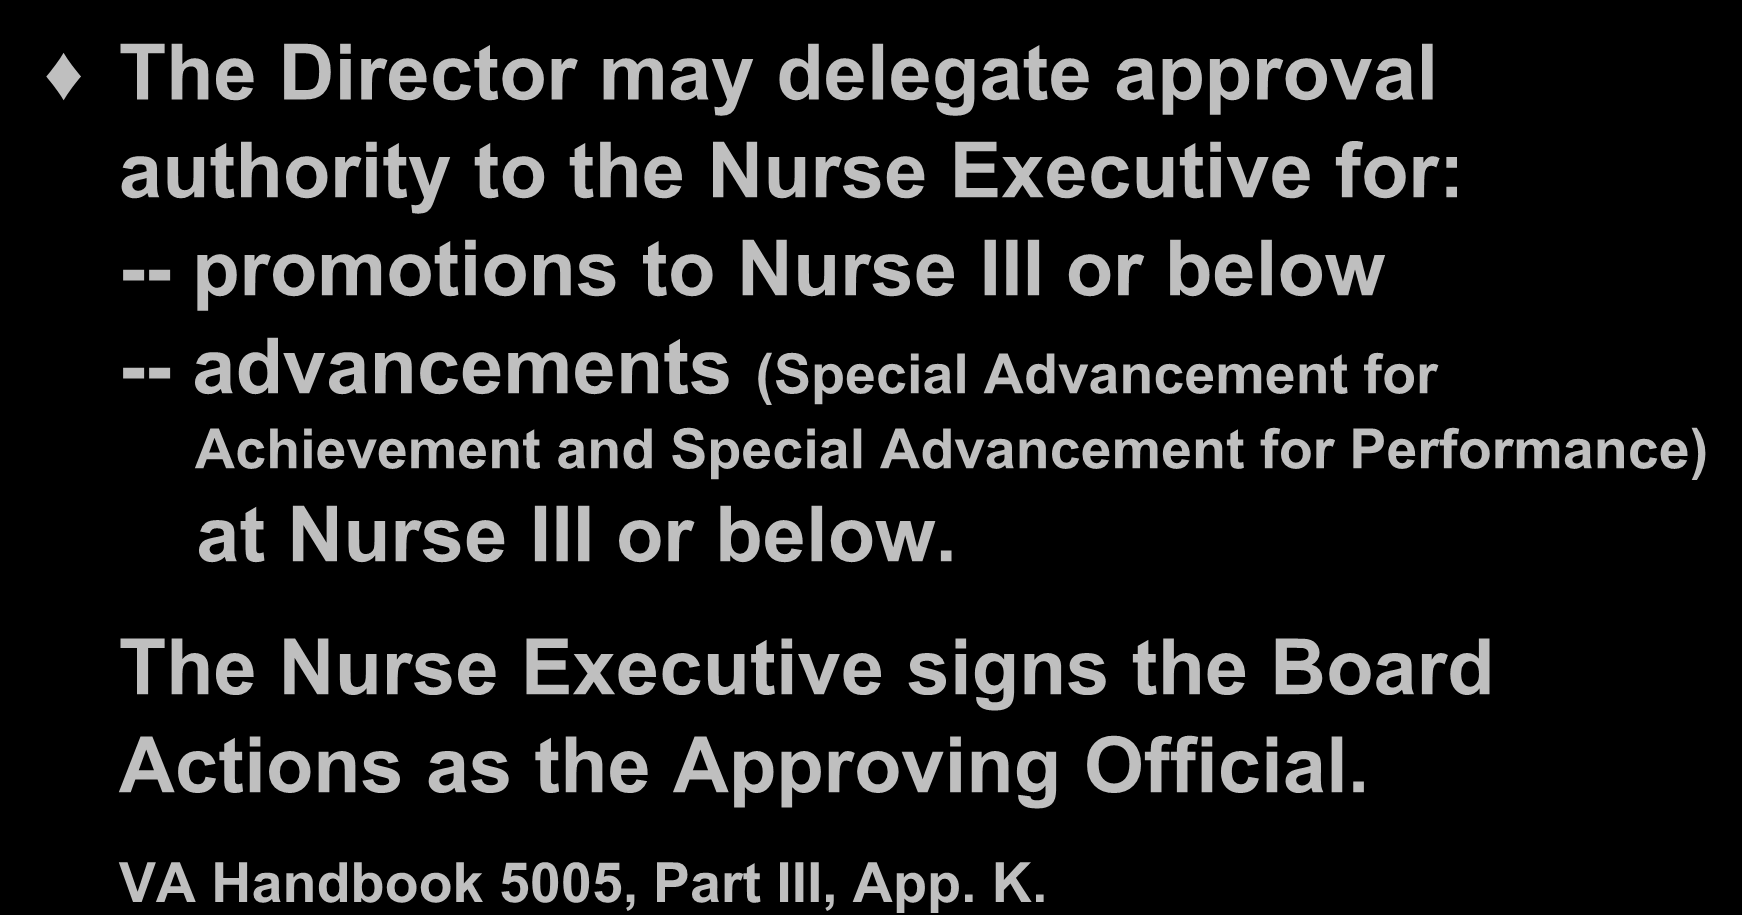 Responsibilities / Nurse Executive The Director may delegate approval authority to the Nurse Executive for: -- promotions to Nurse III or below -- advancements (Special Advancement for